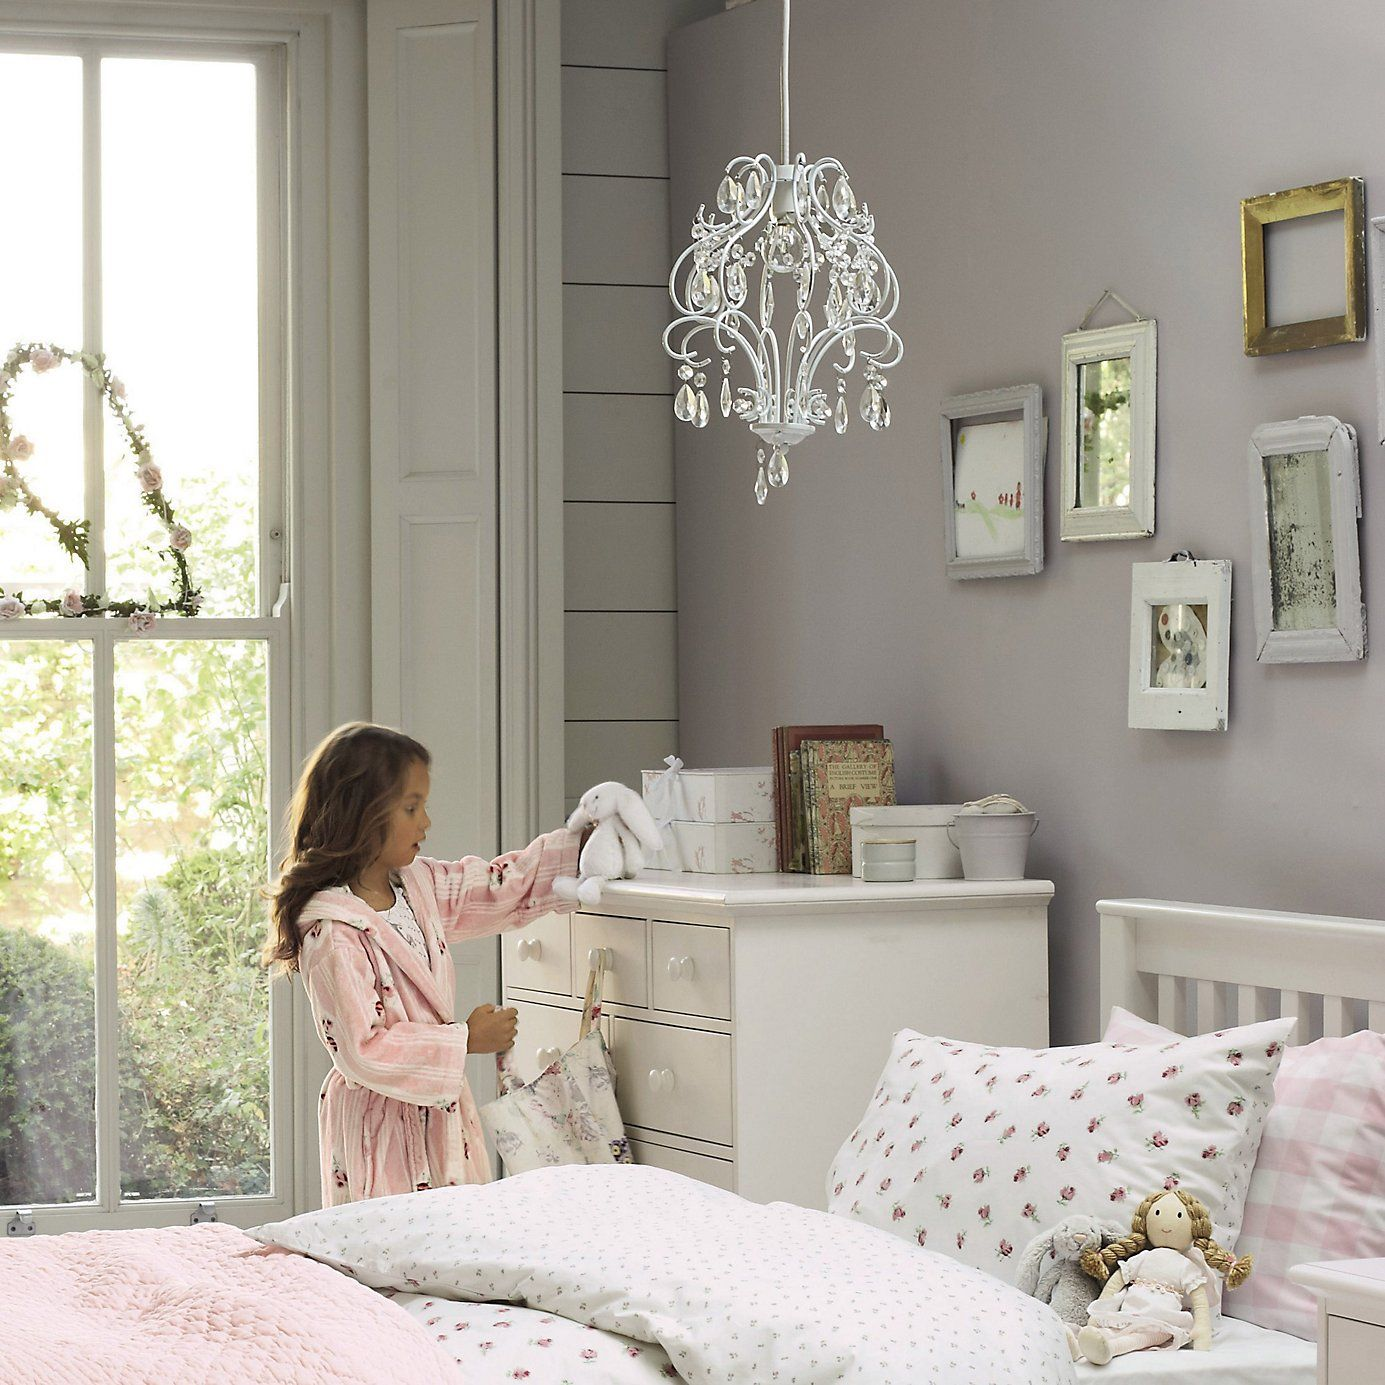 Buy Childrens Bedroom > Bedroom Accessories > Chandelier Shade ...